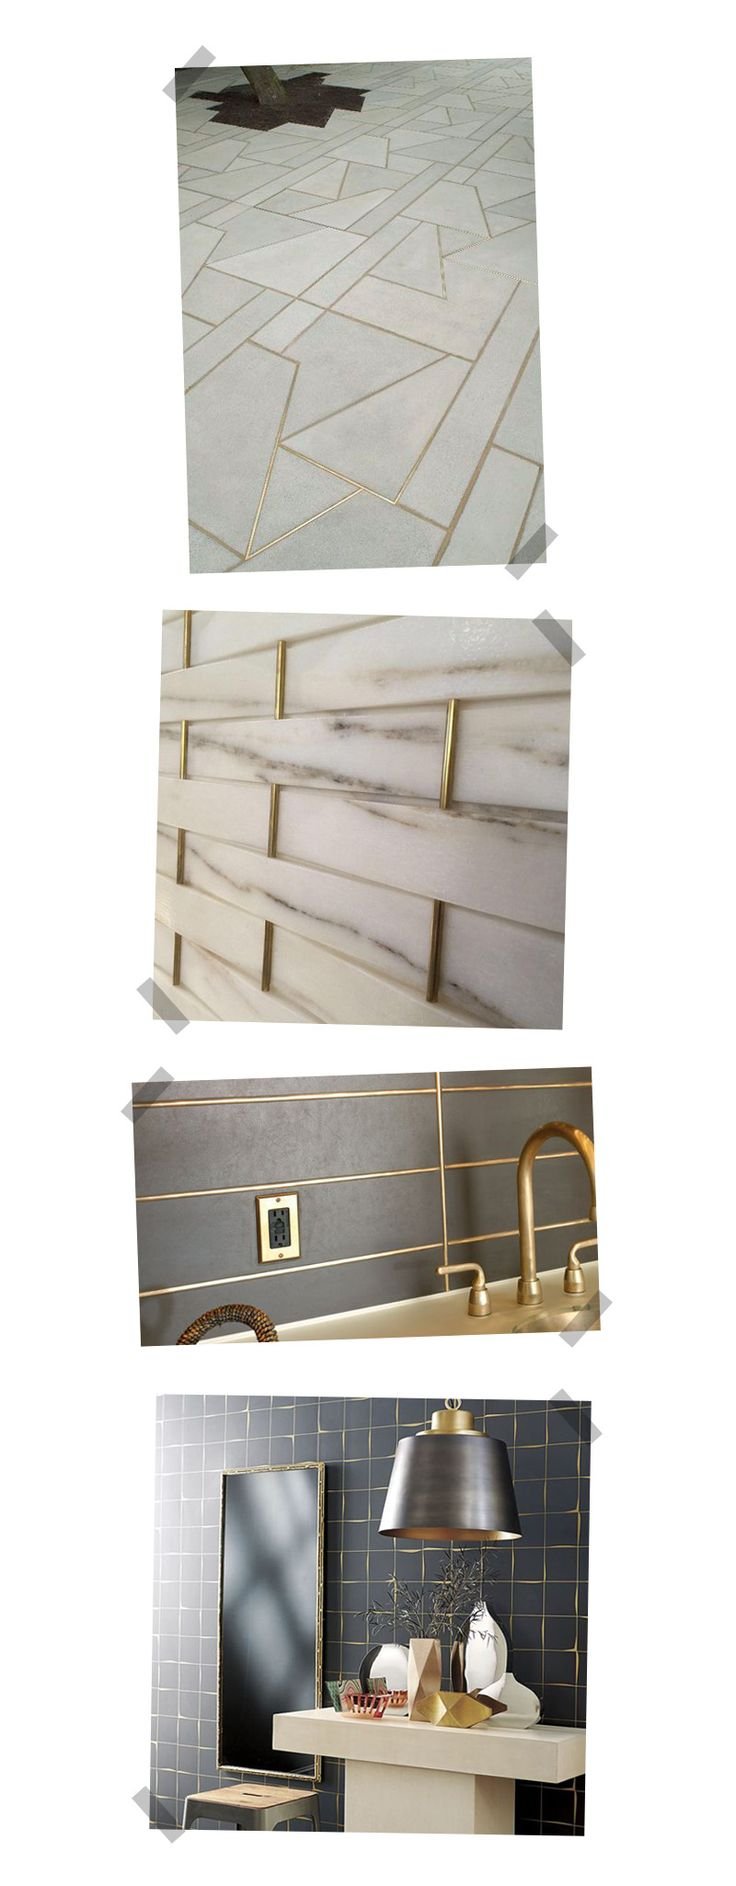 Change Color Of Kitchen Floor Tile 5 Home Decor Trends: Gold Grout | On The Blog. | Pinterest